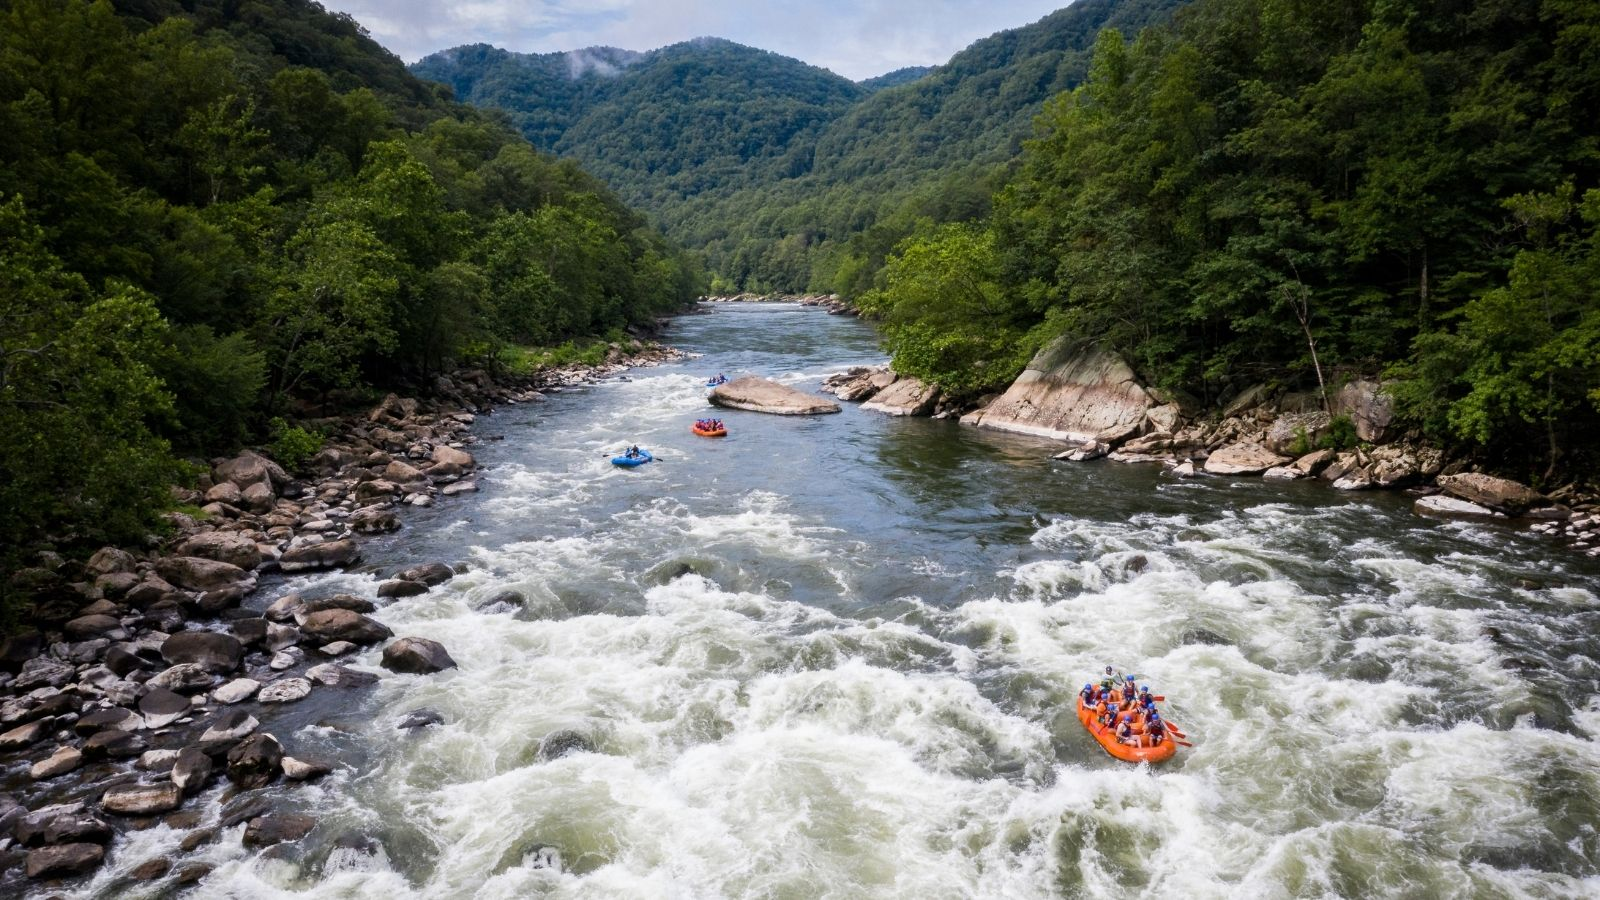 Whitewater rafting on the New River (Photo: Adventures on the Gorge)